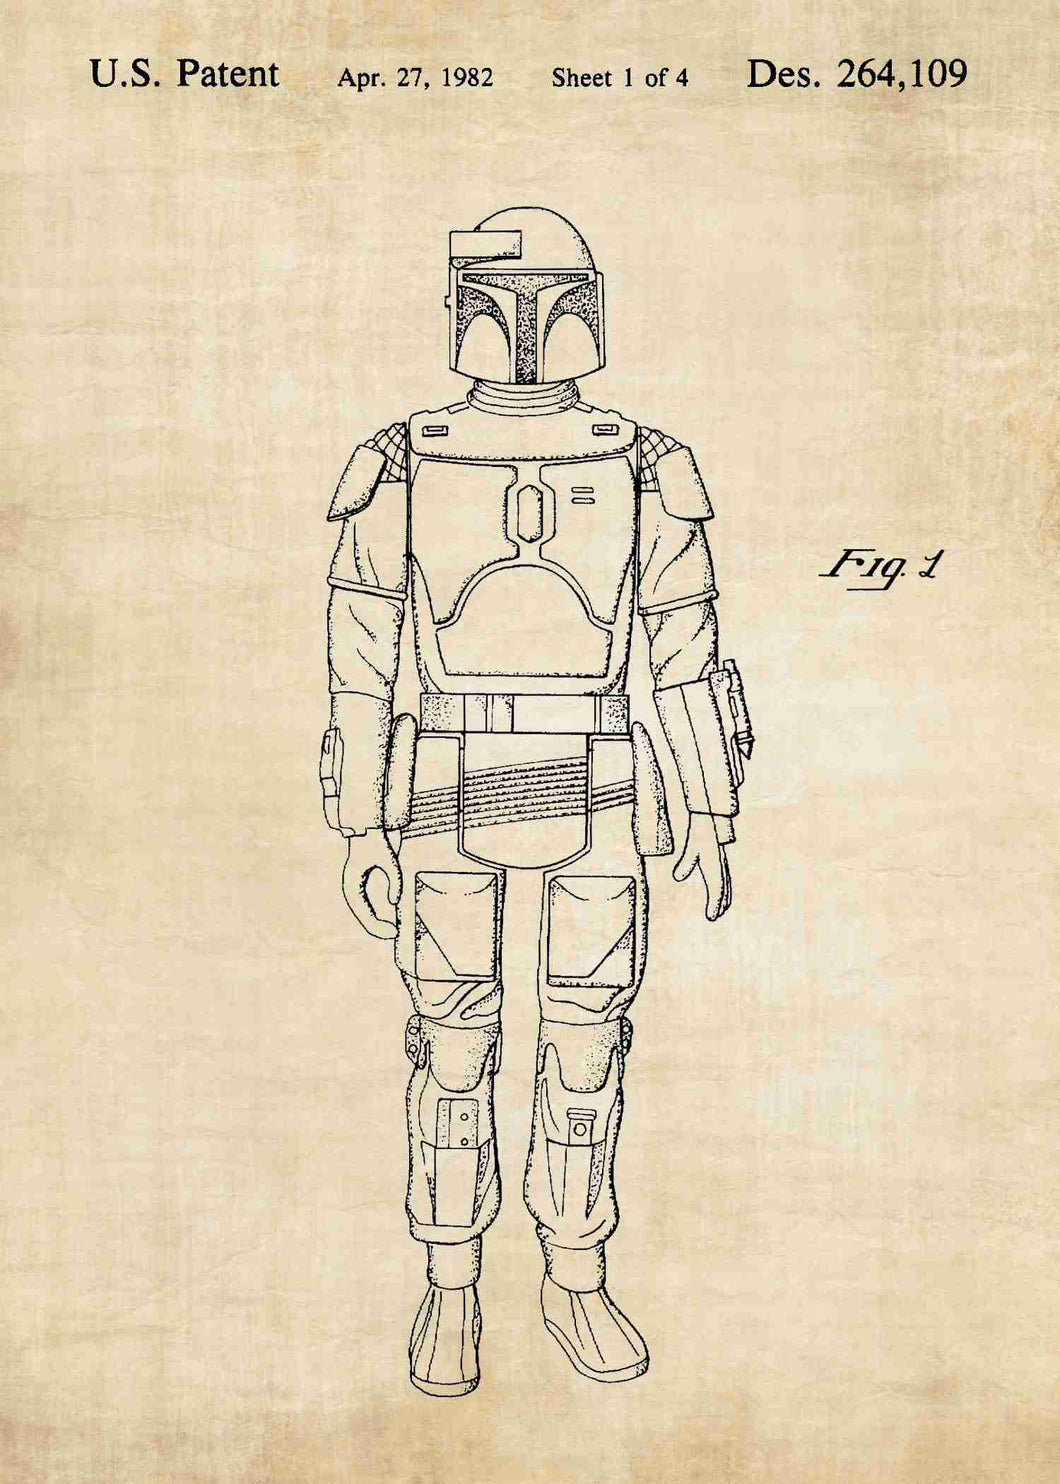 Original boba fett patent from the first trilogy of the star wars series. This star wars poster is in the style vintage